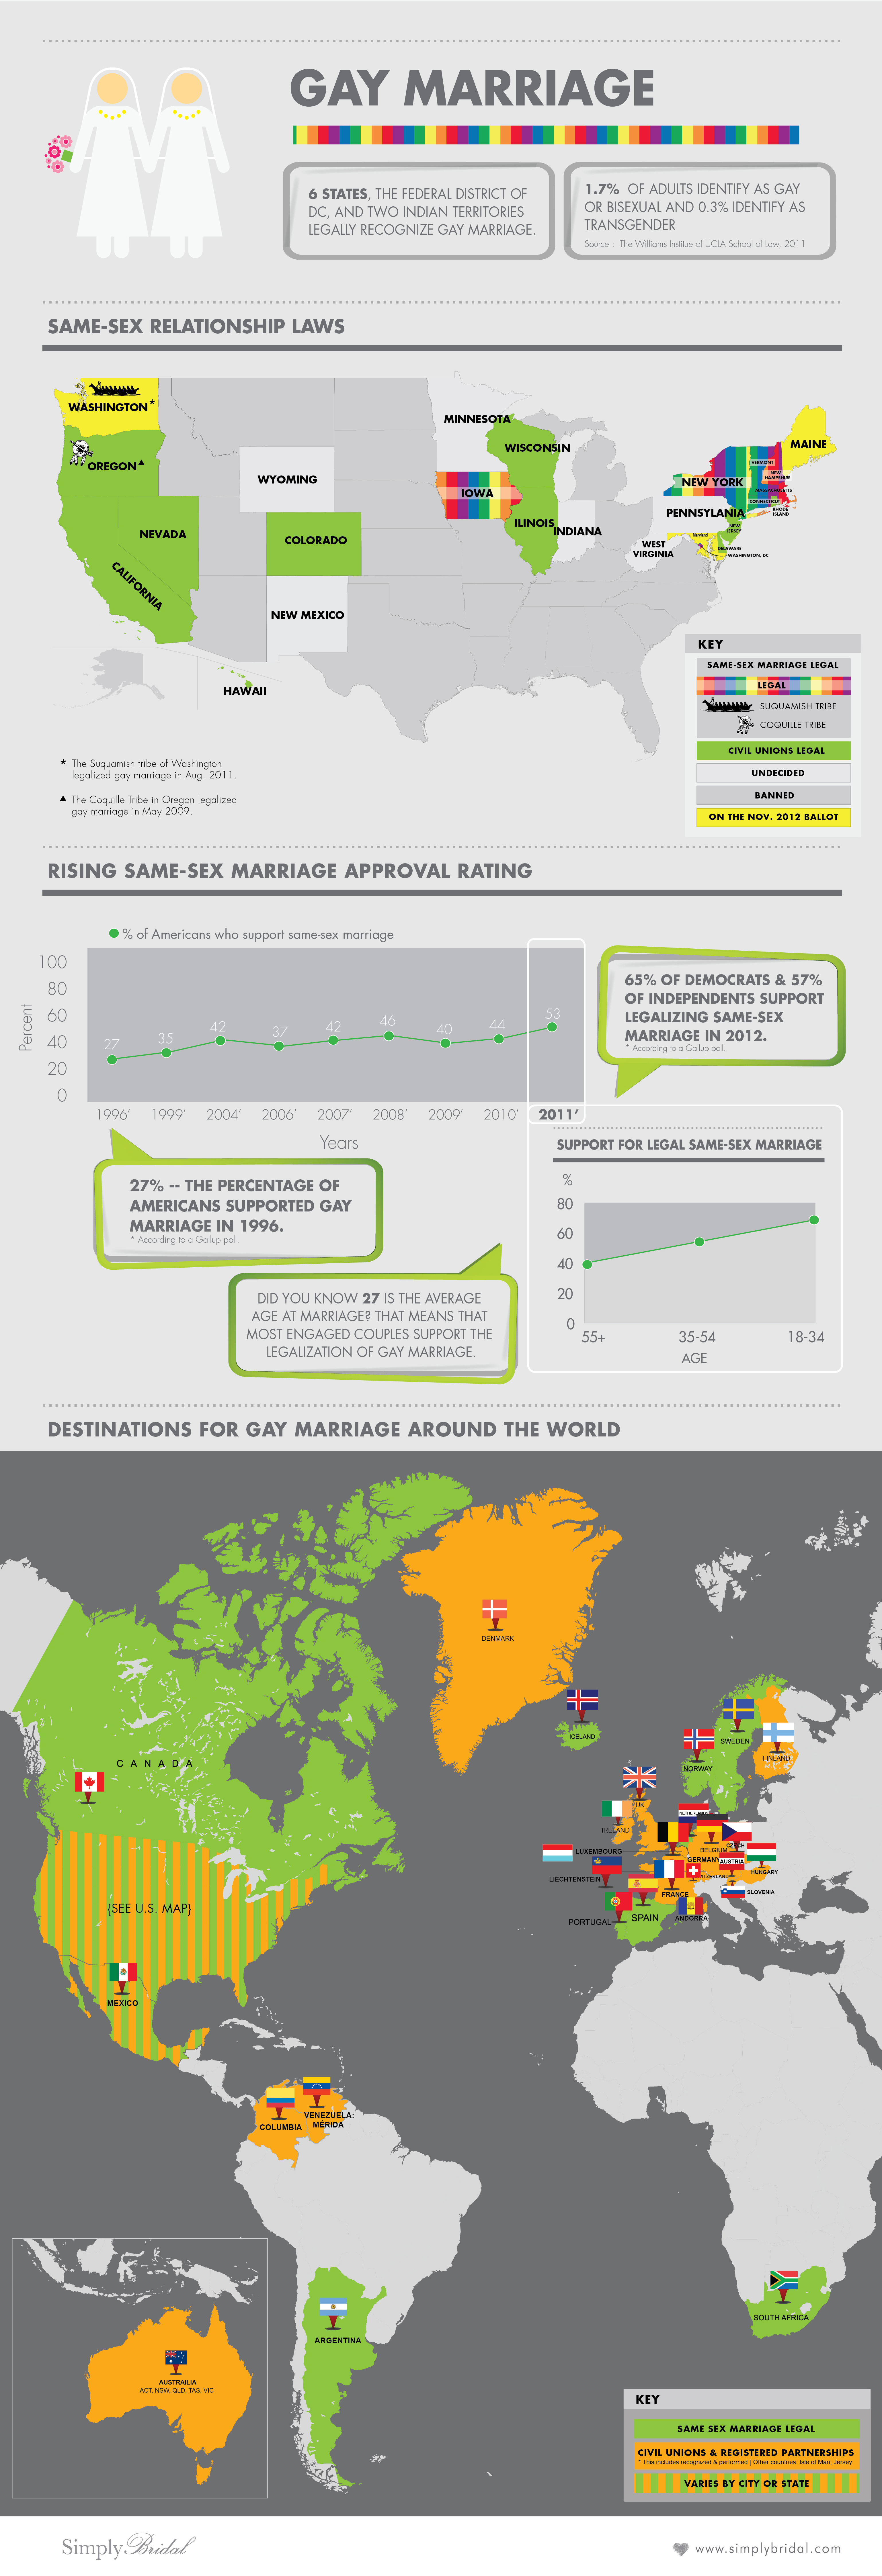 The pros and cons of gay marriage